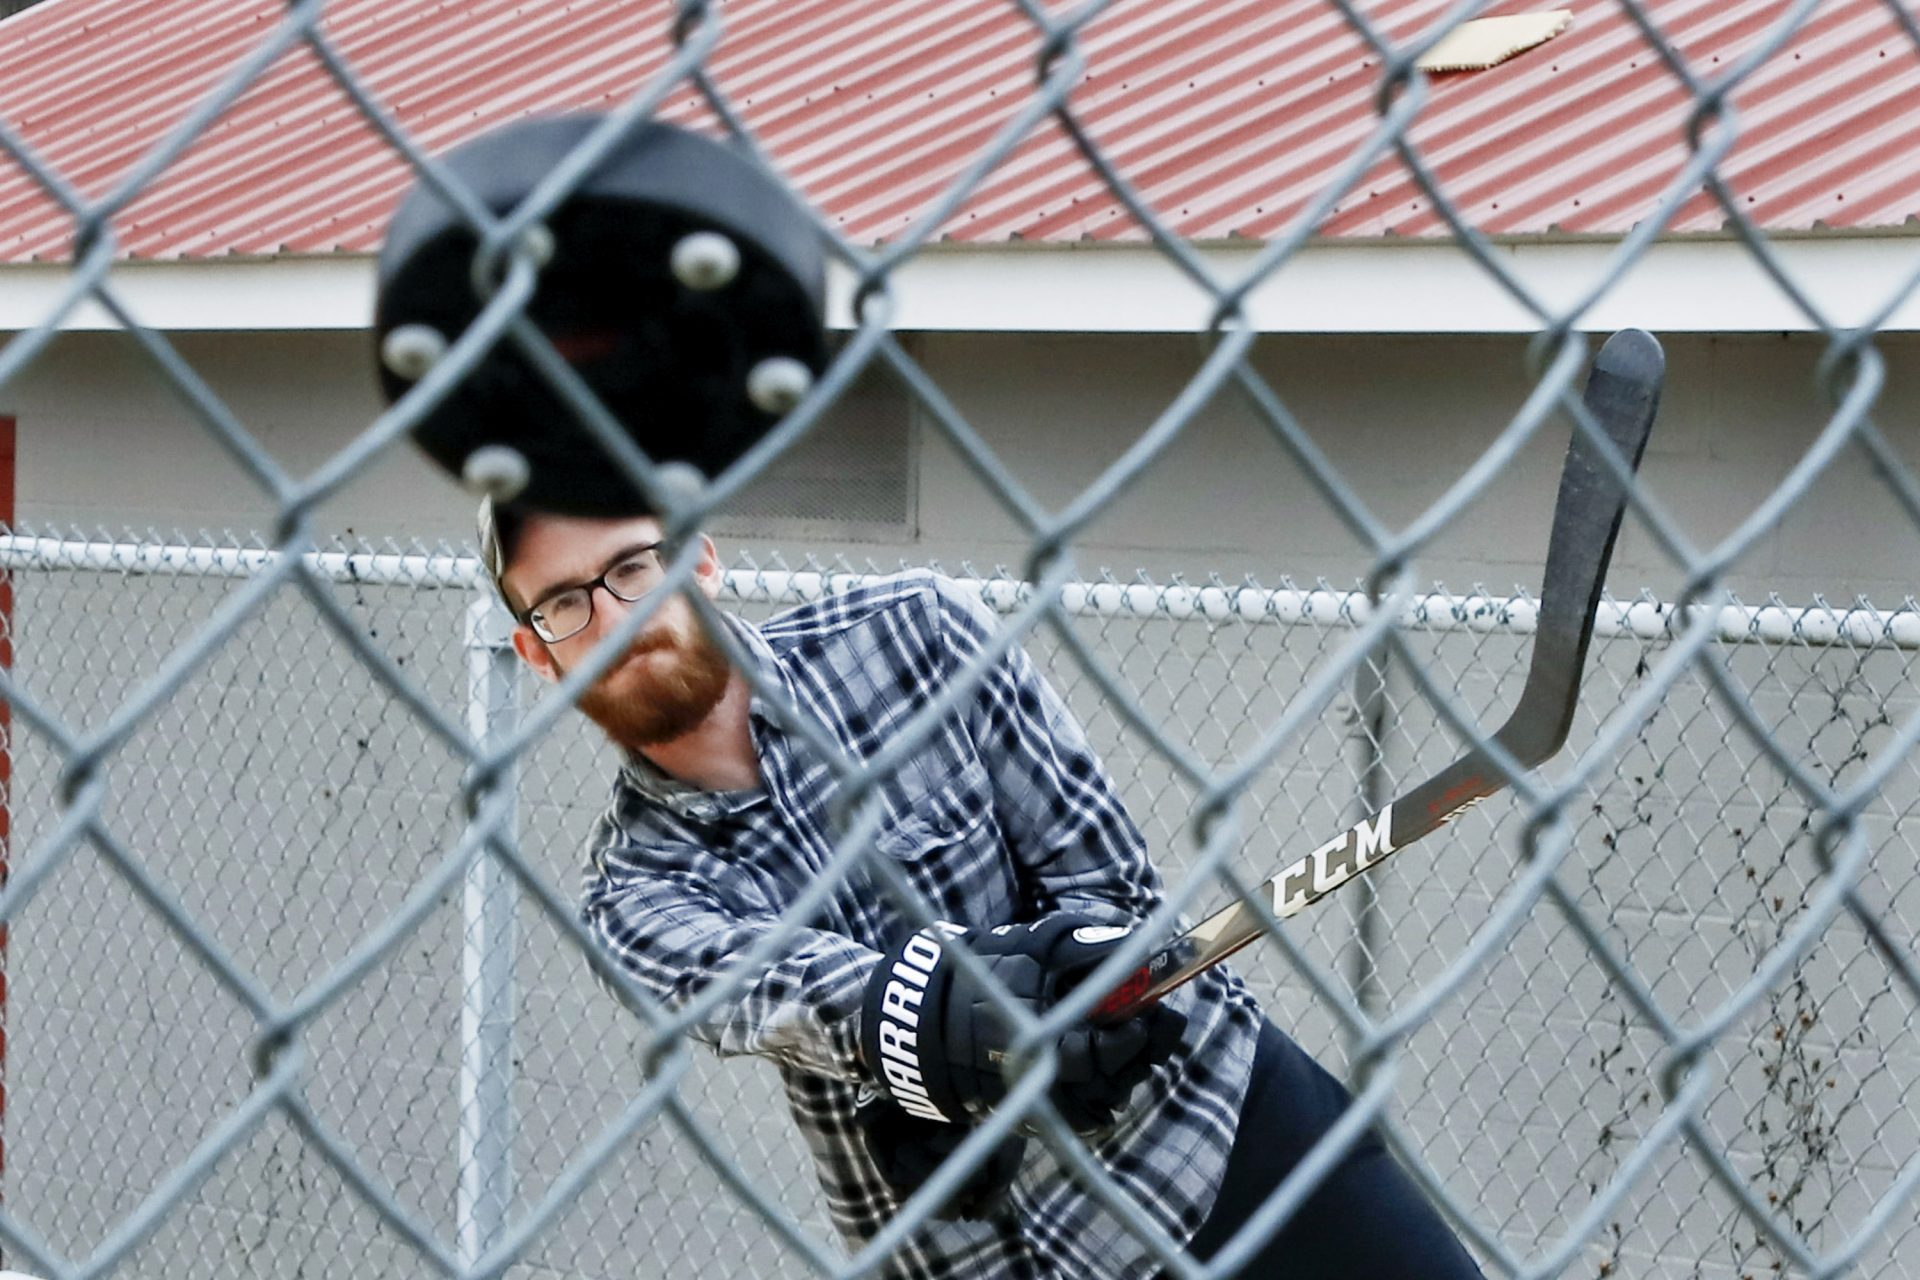 Jason Dapper, shoots a street hockey puck at the fence in one of the tennis courts at the local park as he practices his hockey skills with his wife, Friday, March 27, 2020, in Zelienople, Pa. The couple said they have taken to the park since the local rinks have closed with the outbreak of COVID-19.